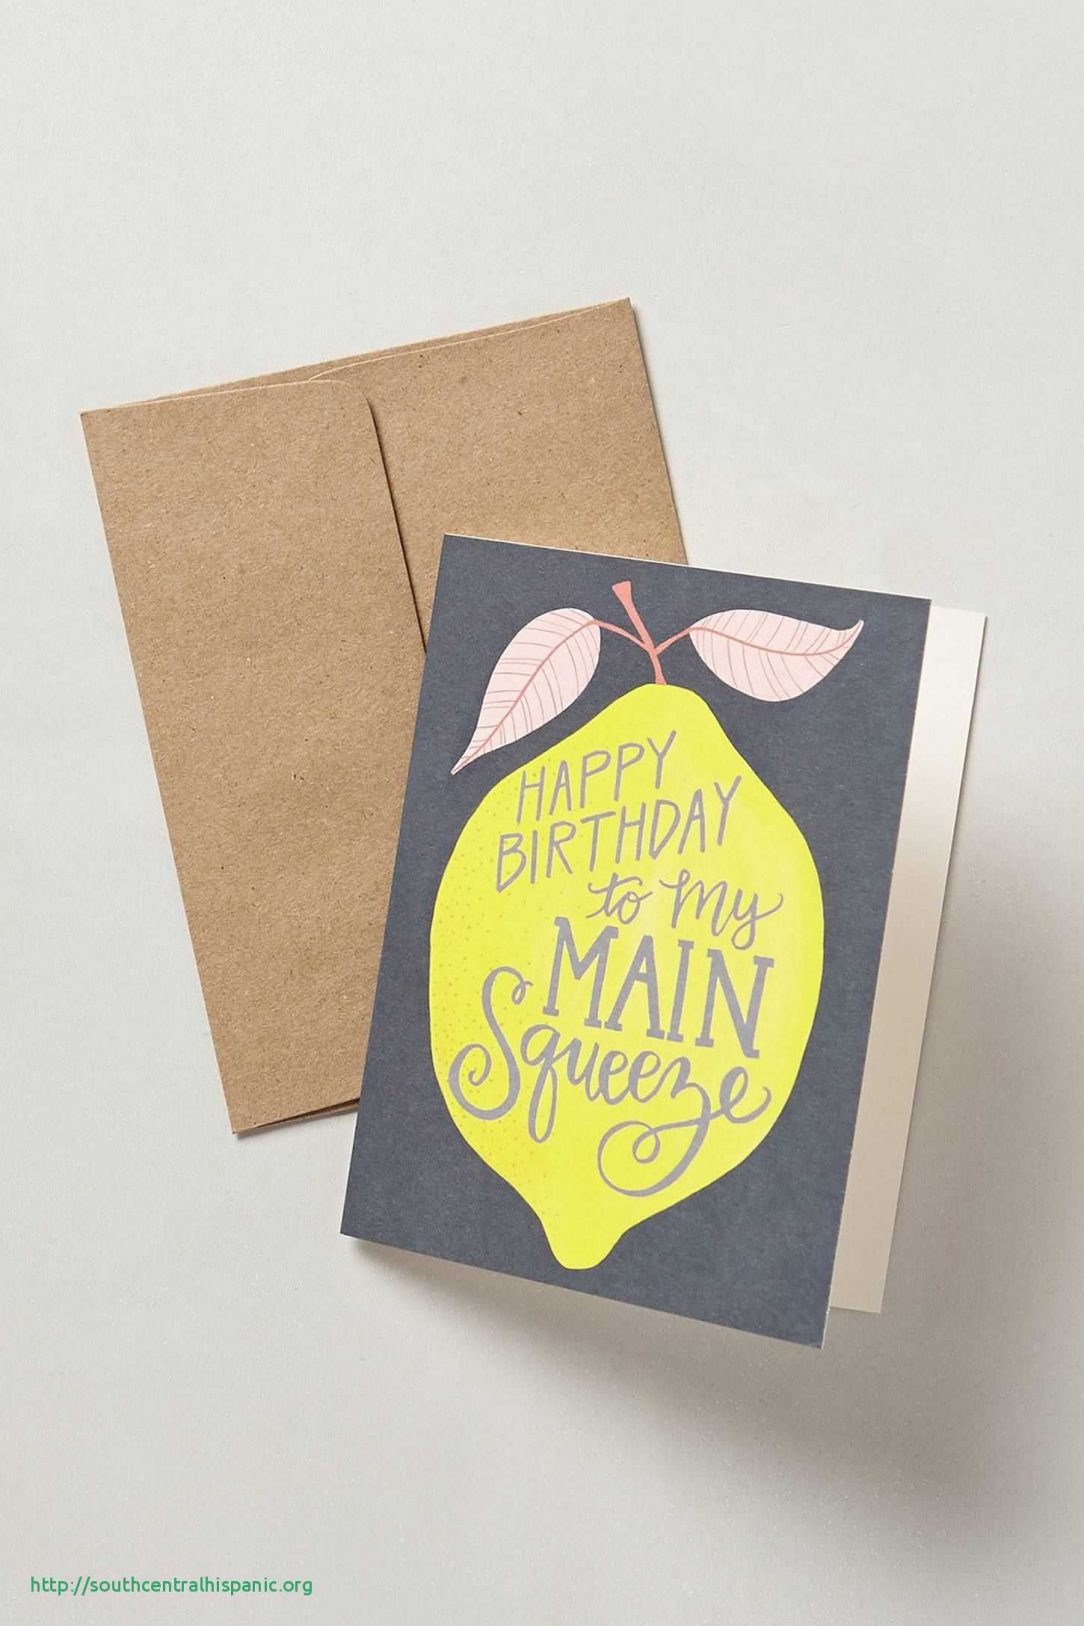 Cards For Dads Birthday Ideas Dads Birthday Cards Ideas Homemade Easy Dad Card Wording Text Verses